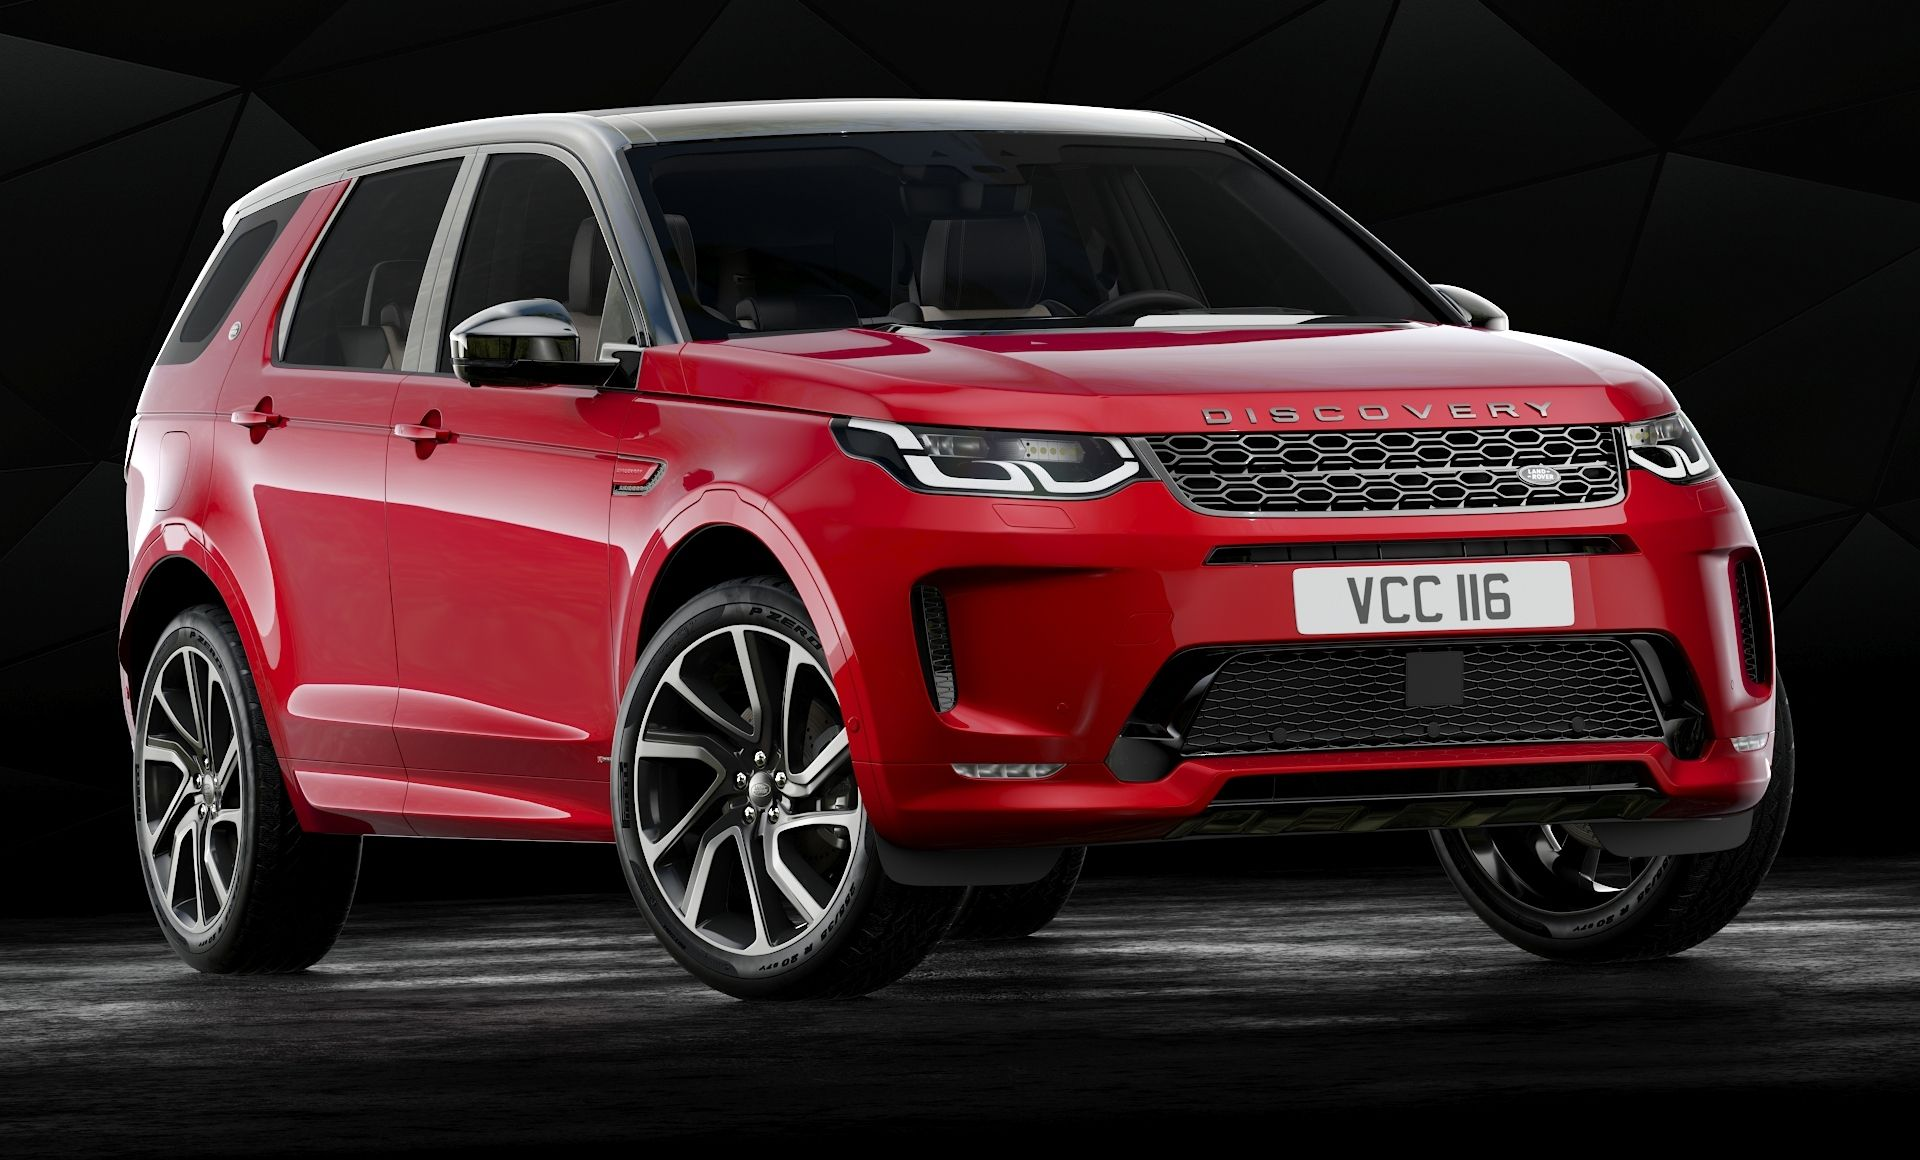 2020 Land Rover Discovery Sport 3d Model Land Rover Discovery Sport Land Rover Land Rover Discovery